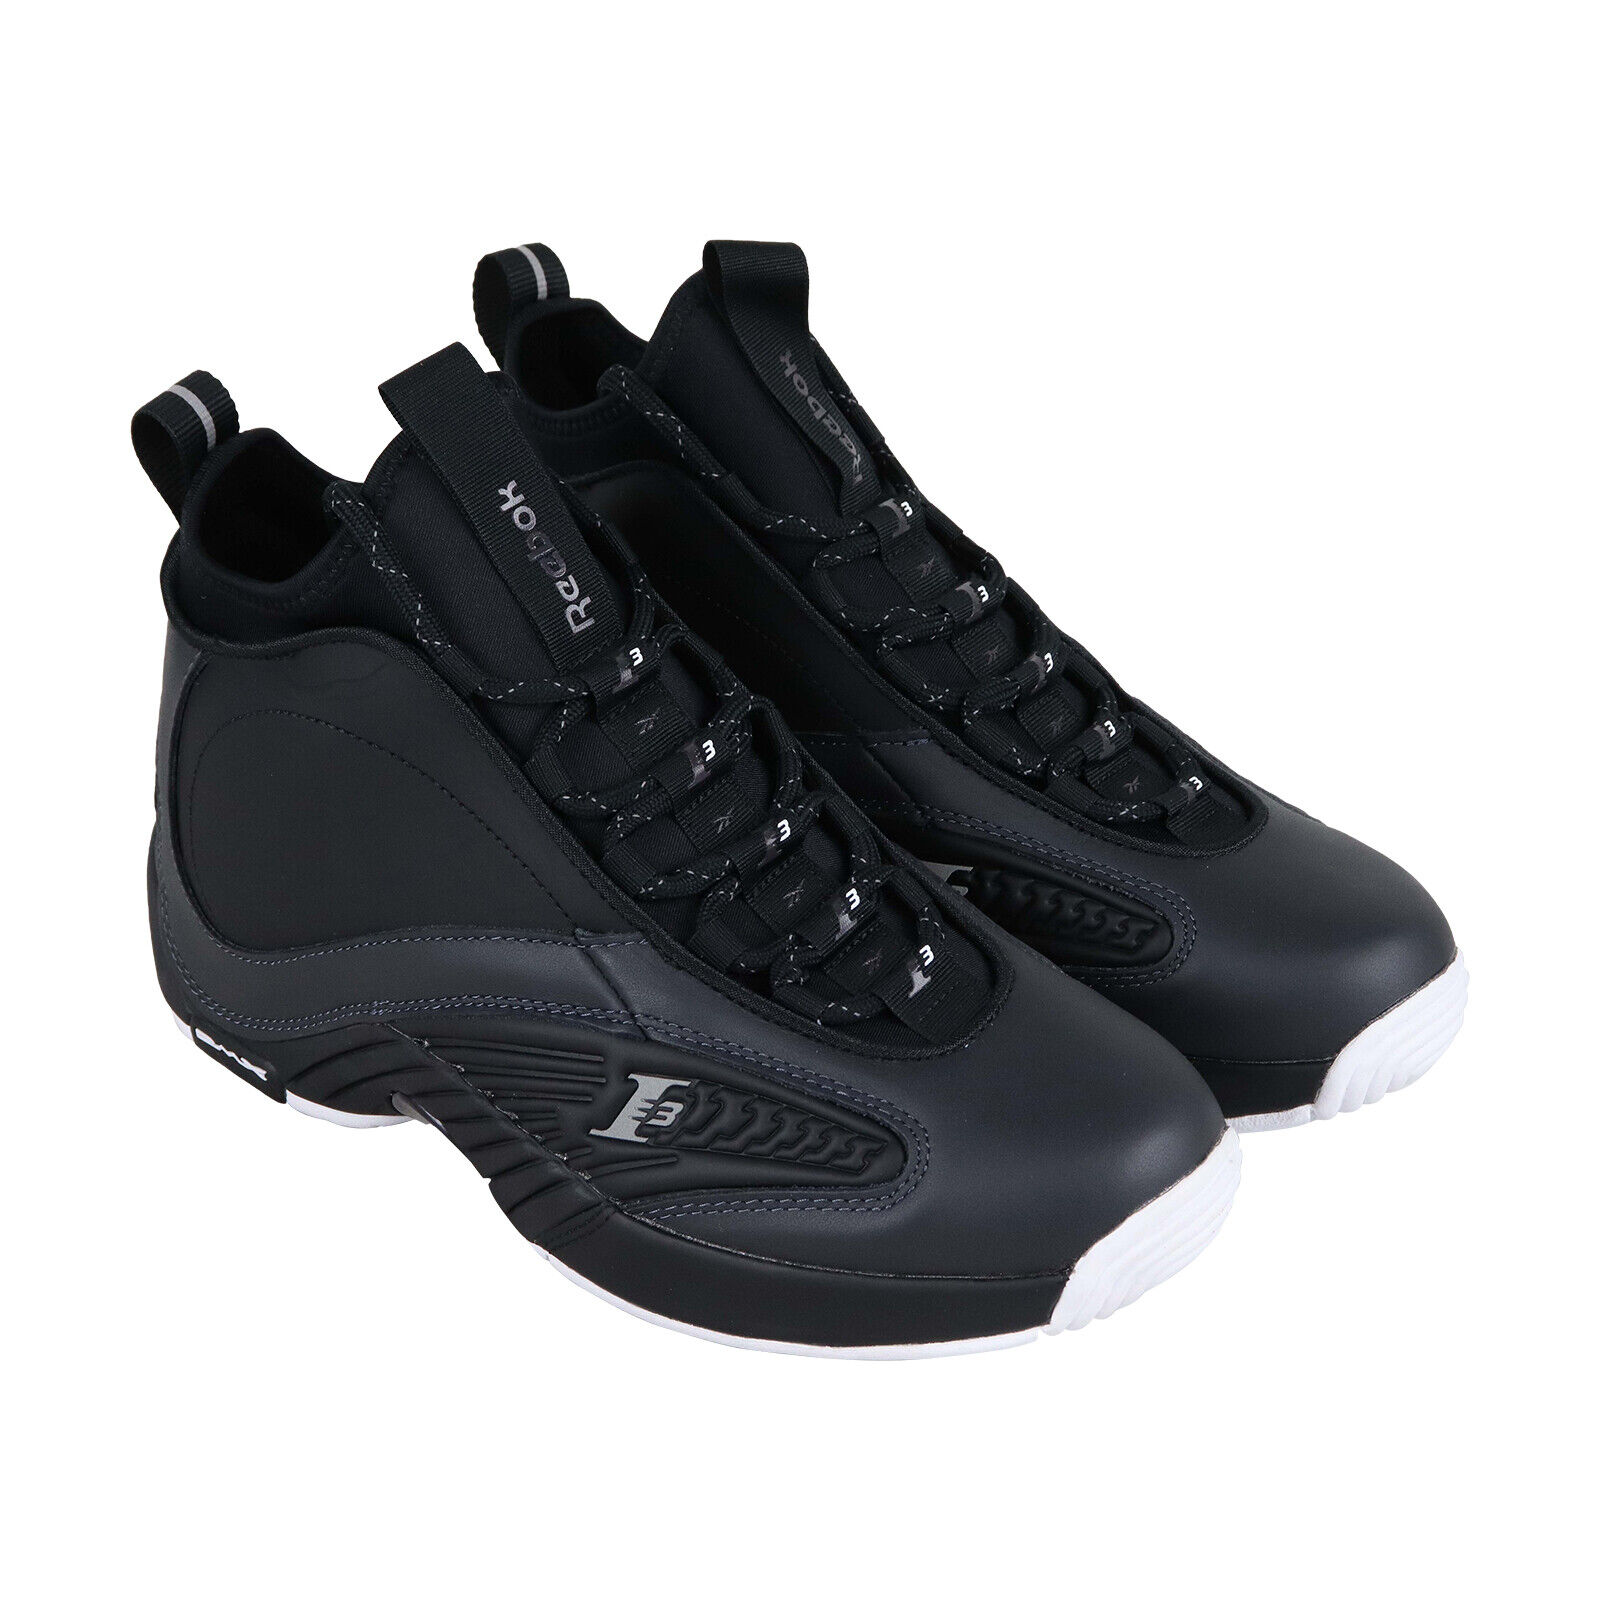 Reebok Iverson Answer Iv. V homme synthétique noir High Top Turnchaussures chaussures